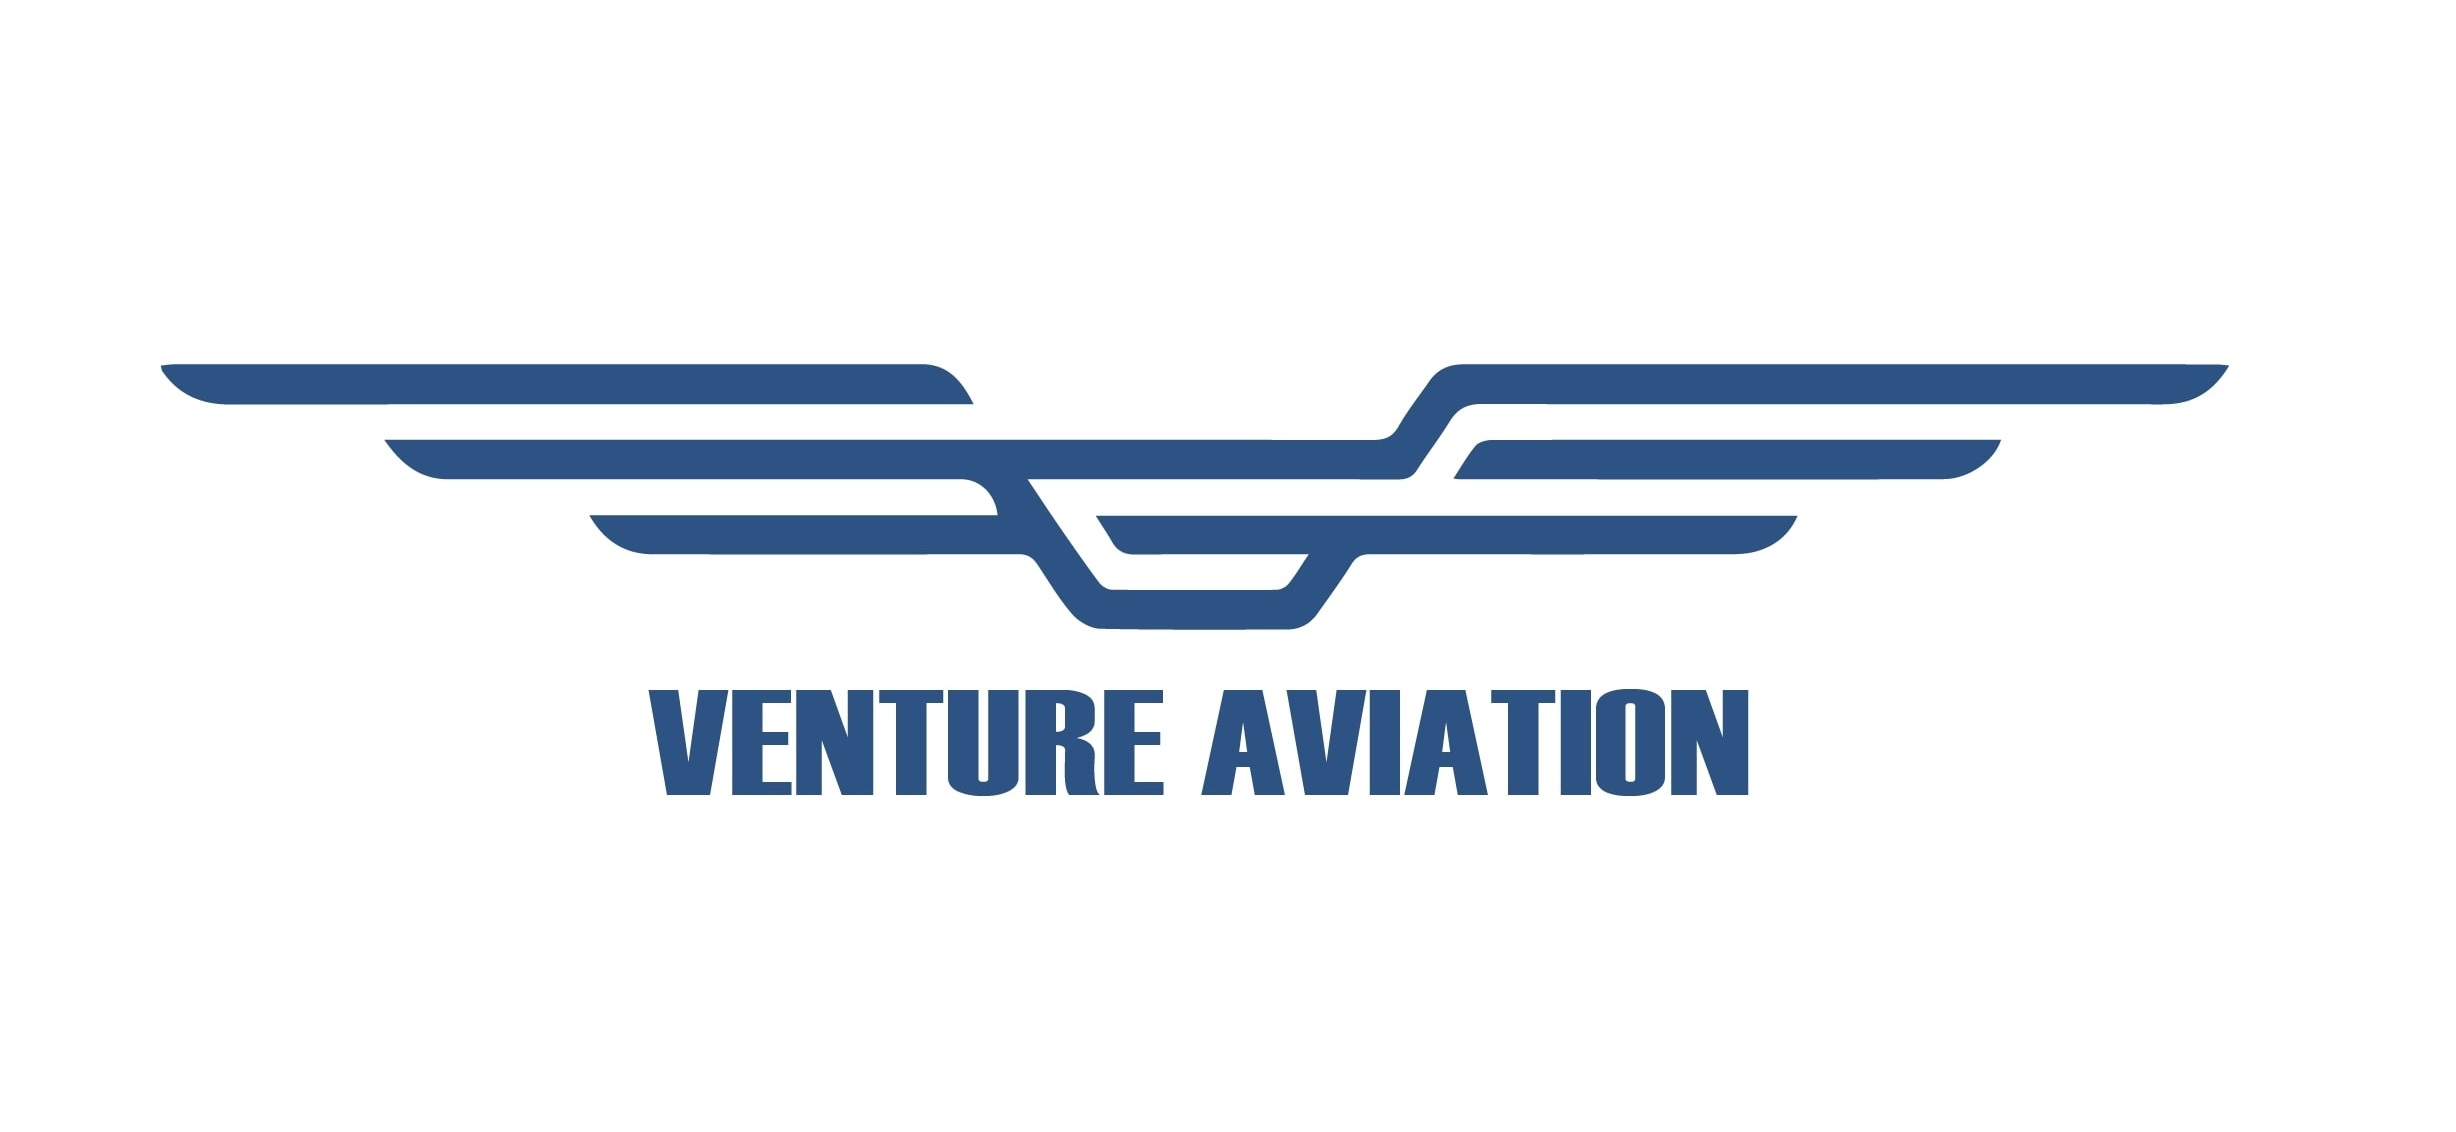 Venture Aviation